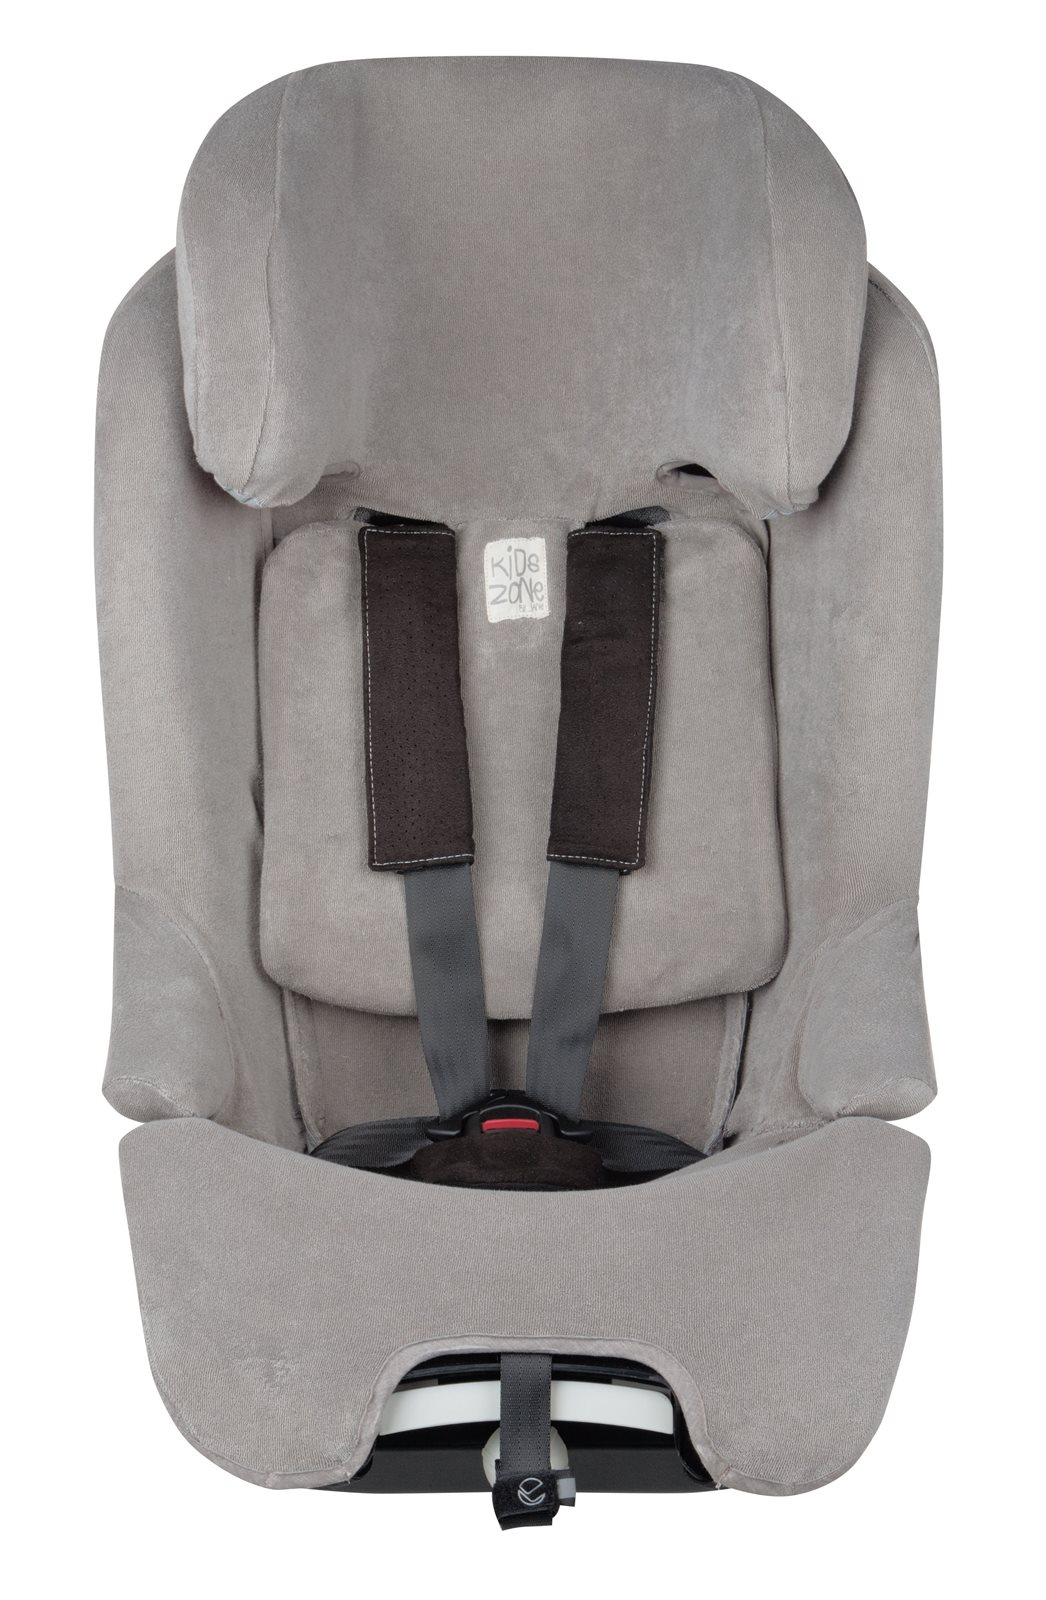 Fun Car Seat Covers Uk